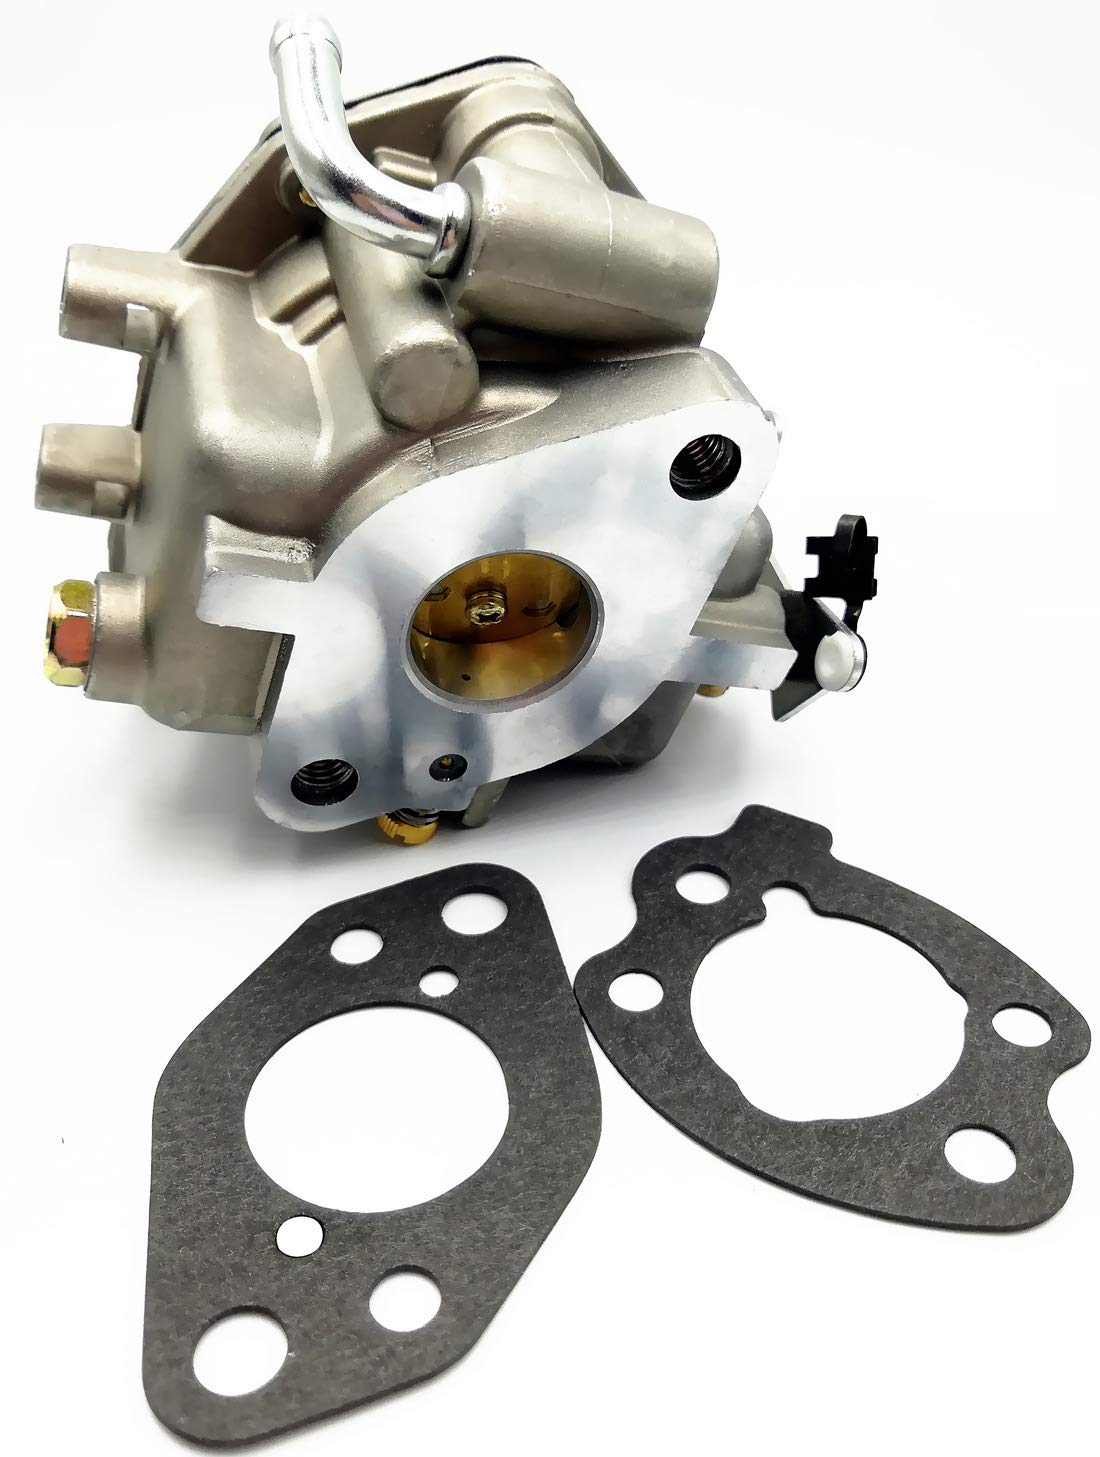 845906 Carburetor for Briggs and Stratton 844041 844988 844039 809013 808252 807943 807801 Replace Numbers 305442 305445 305446 305447 Vanguard 16 Hp Engines